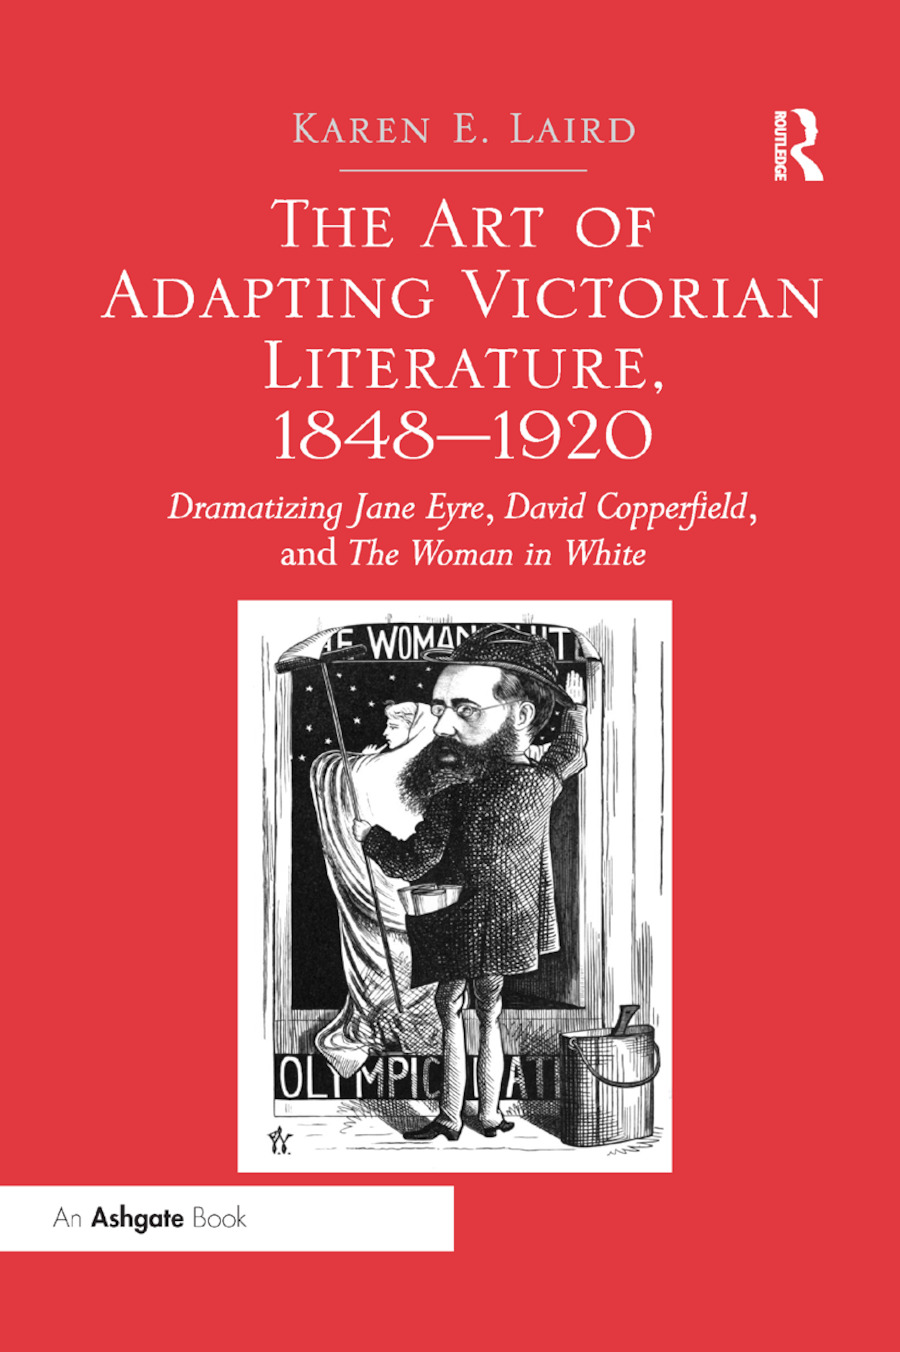 The Art of Adapting Victorian Literature, 1848-1920: Dramatizing Jane Eyre, David Copperfield, and The Woman in White book cover